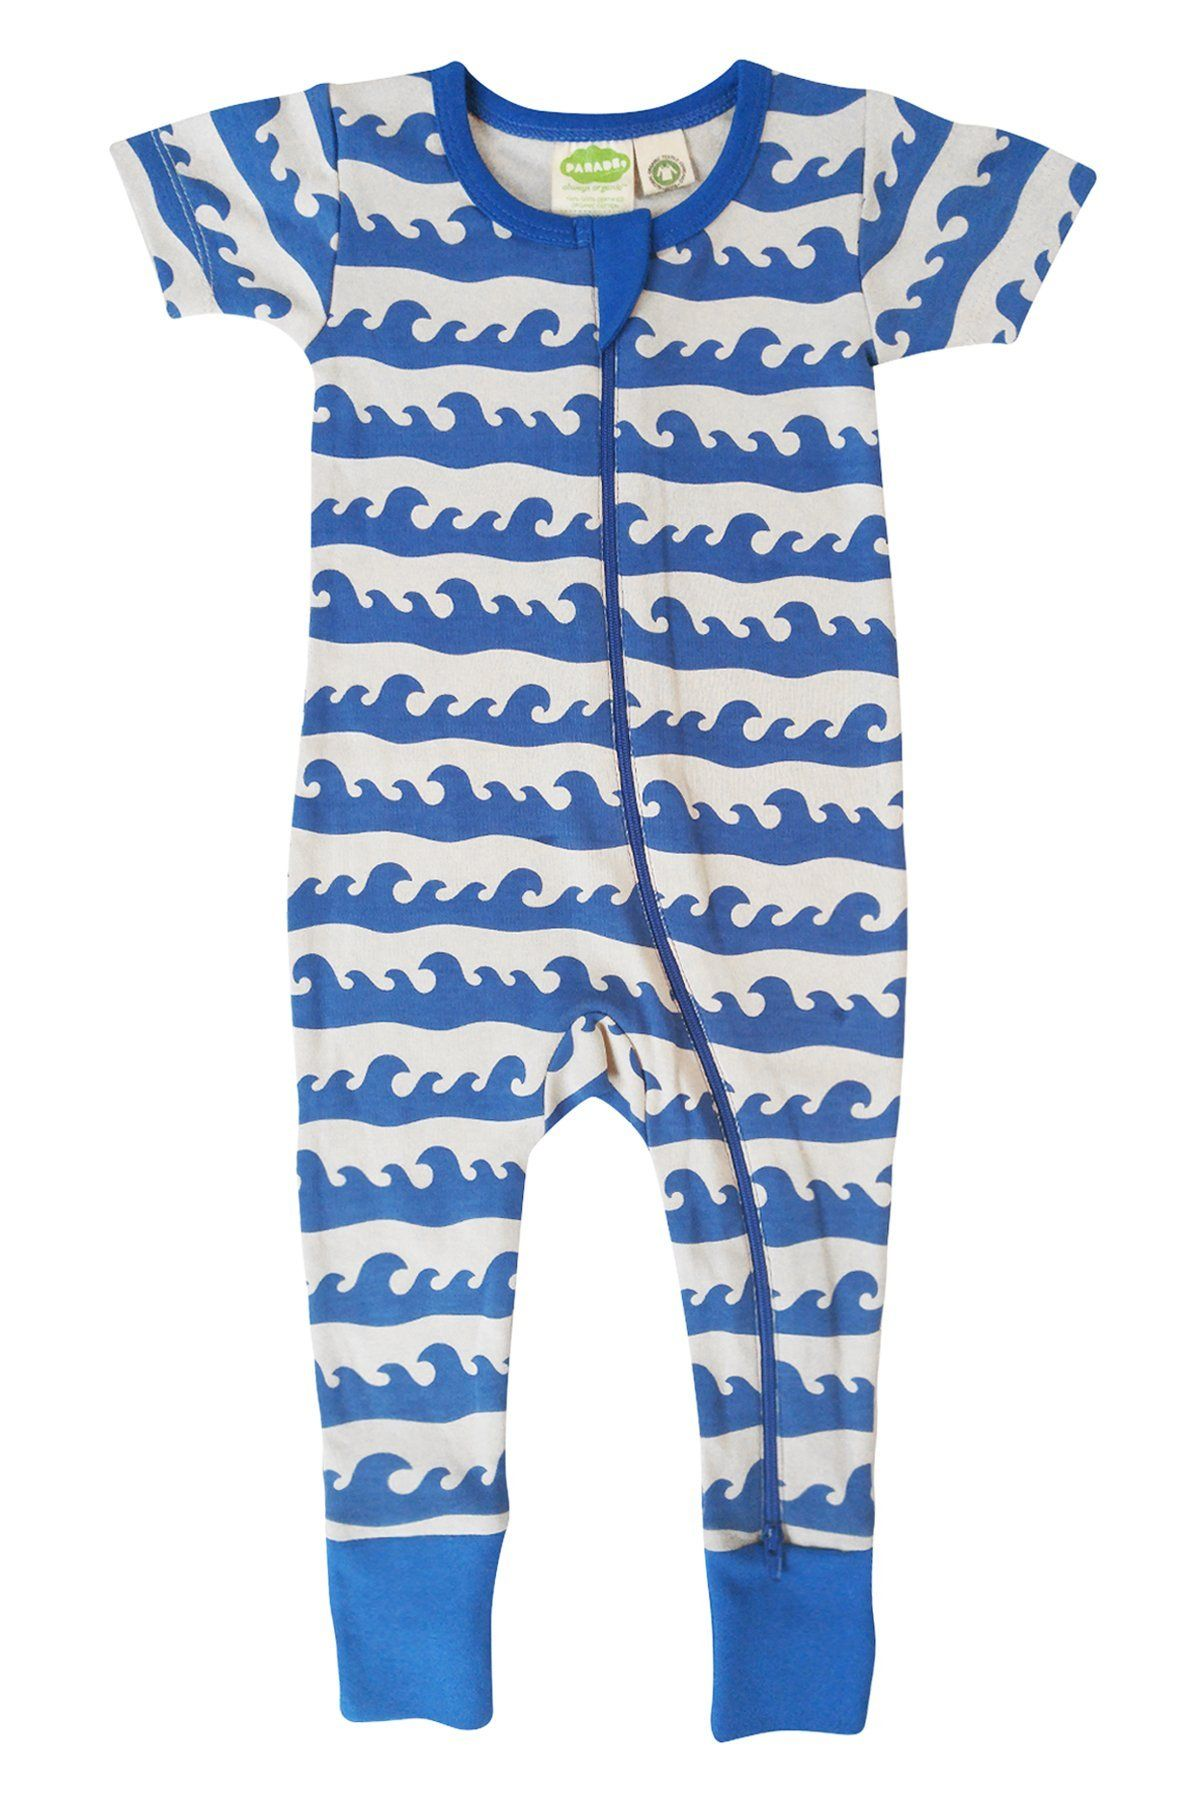 4b899b66e71b Parade s organic cotton rompers are designed for ultimate comfort ...